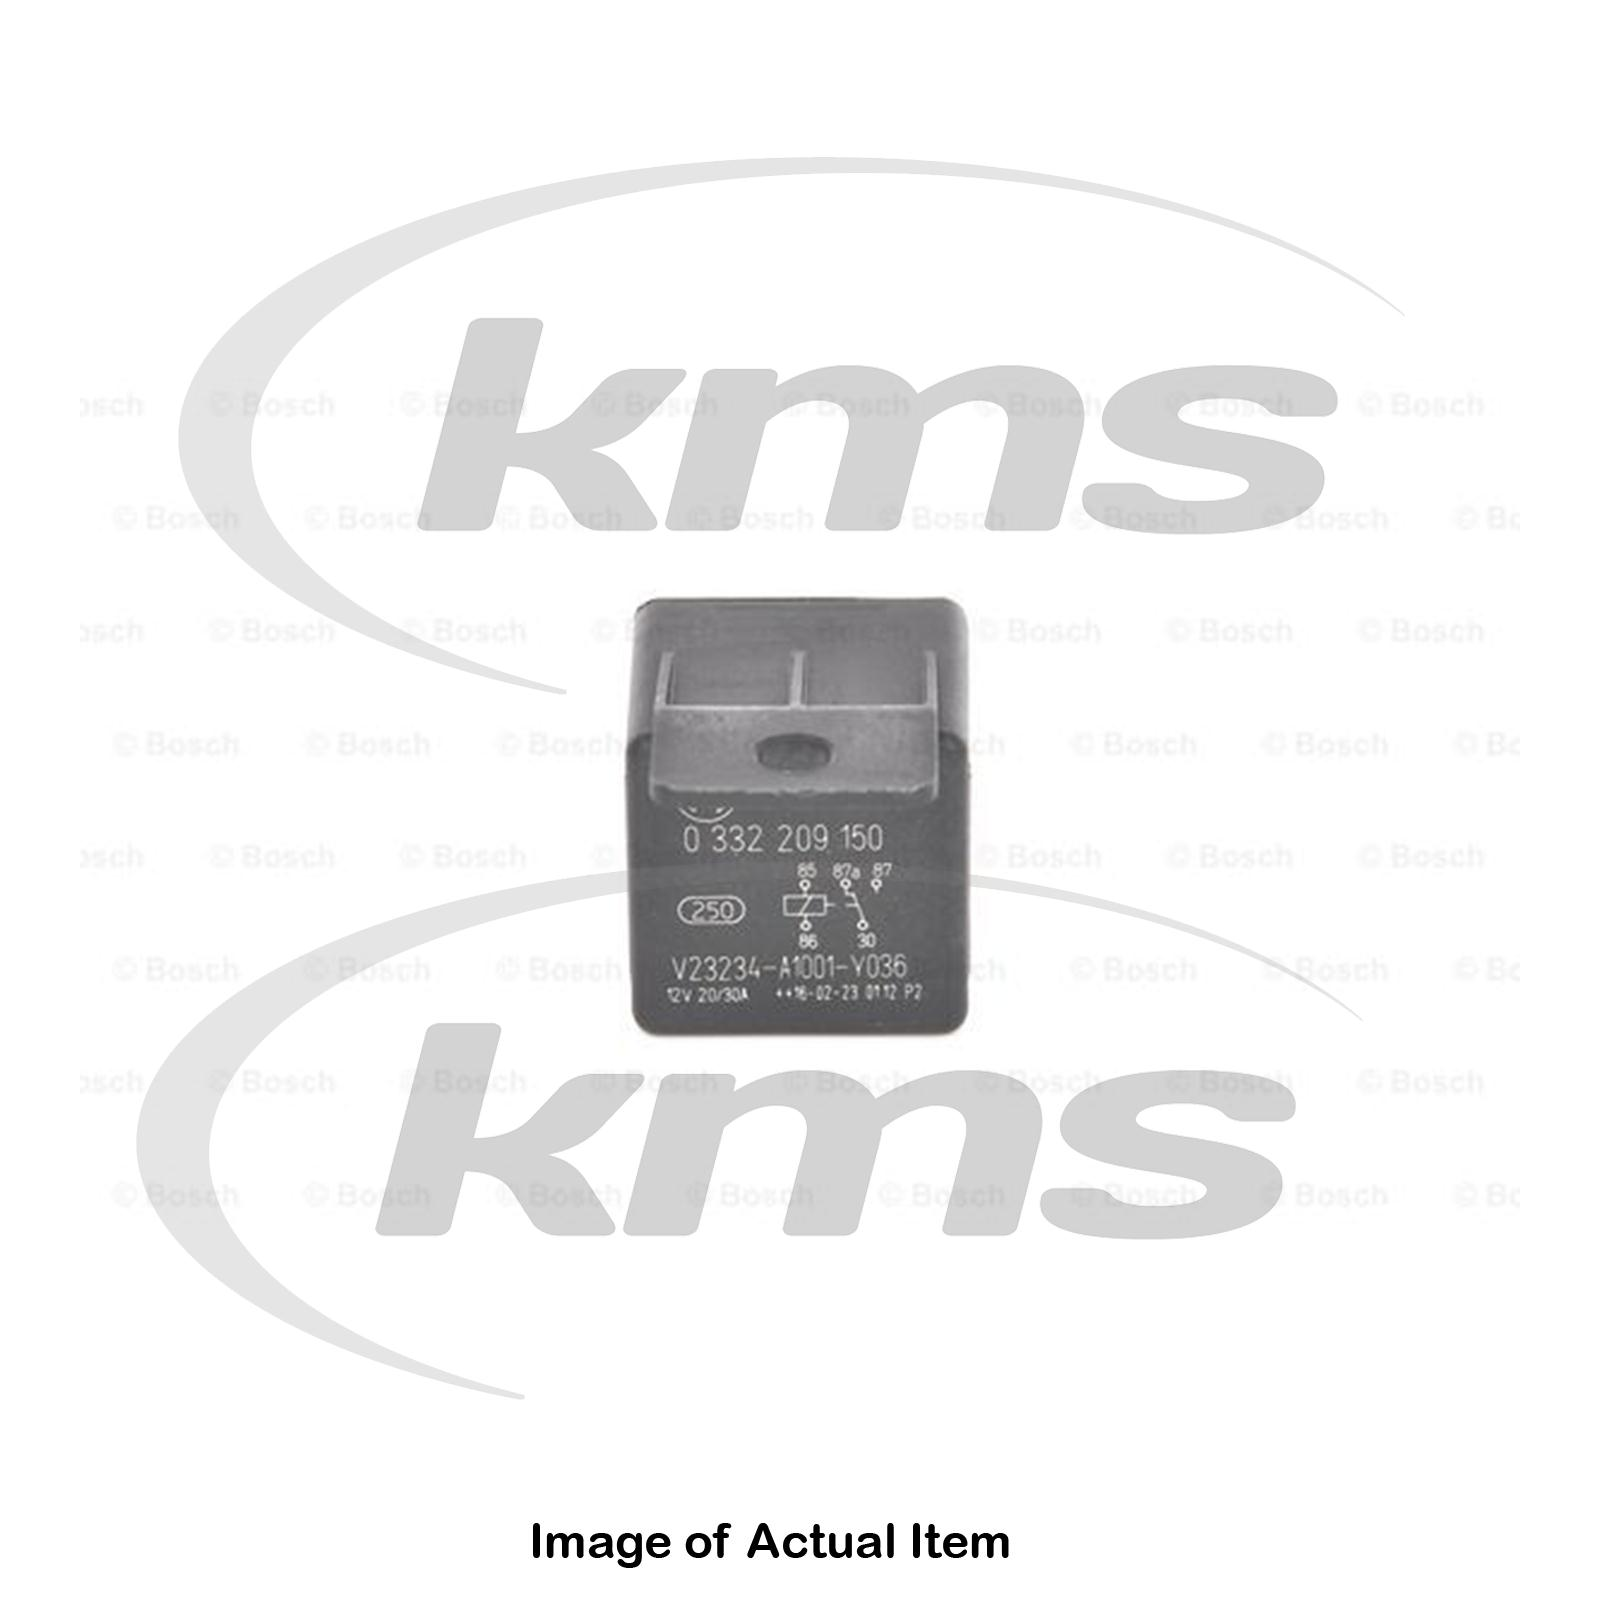 New Genuine BOSCH Main Current Relay 0 332 209 150 Top German ... on bosch relay bases, bosch relay holder, bosch relay 12v 30a, bosch relay configuration, bosch relay 510, bosch relay schematic, bosch relay test, bosch relay normally closed, bosch relay cross reference, bosch relay how works,